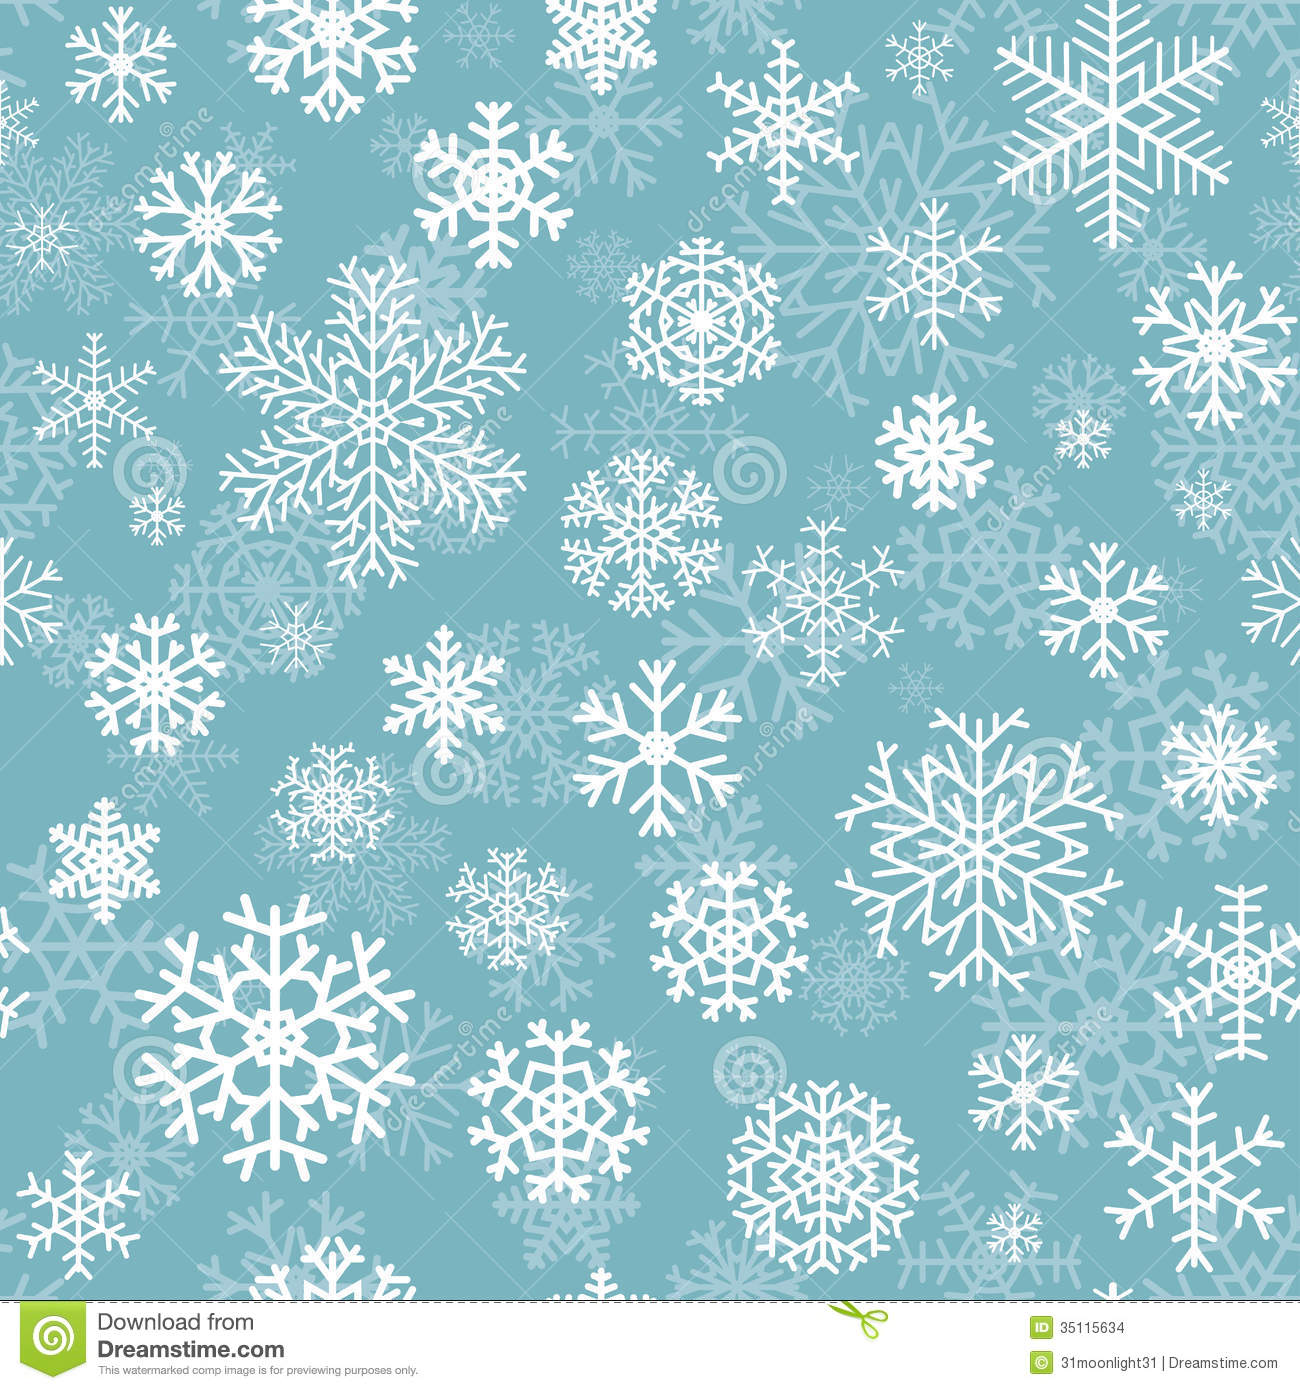 Christmas Snow Falling Wallpaper Christmas Seamless Pattern From Snowflakes Stock Vector